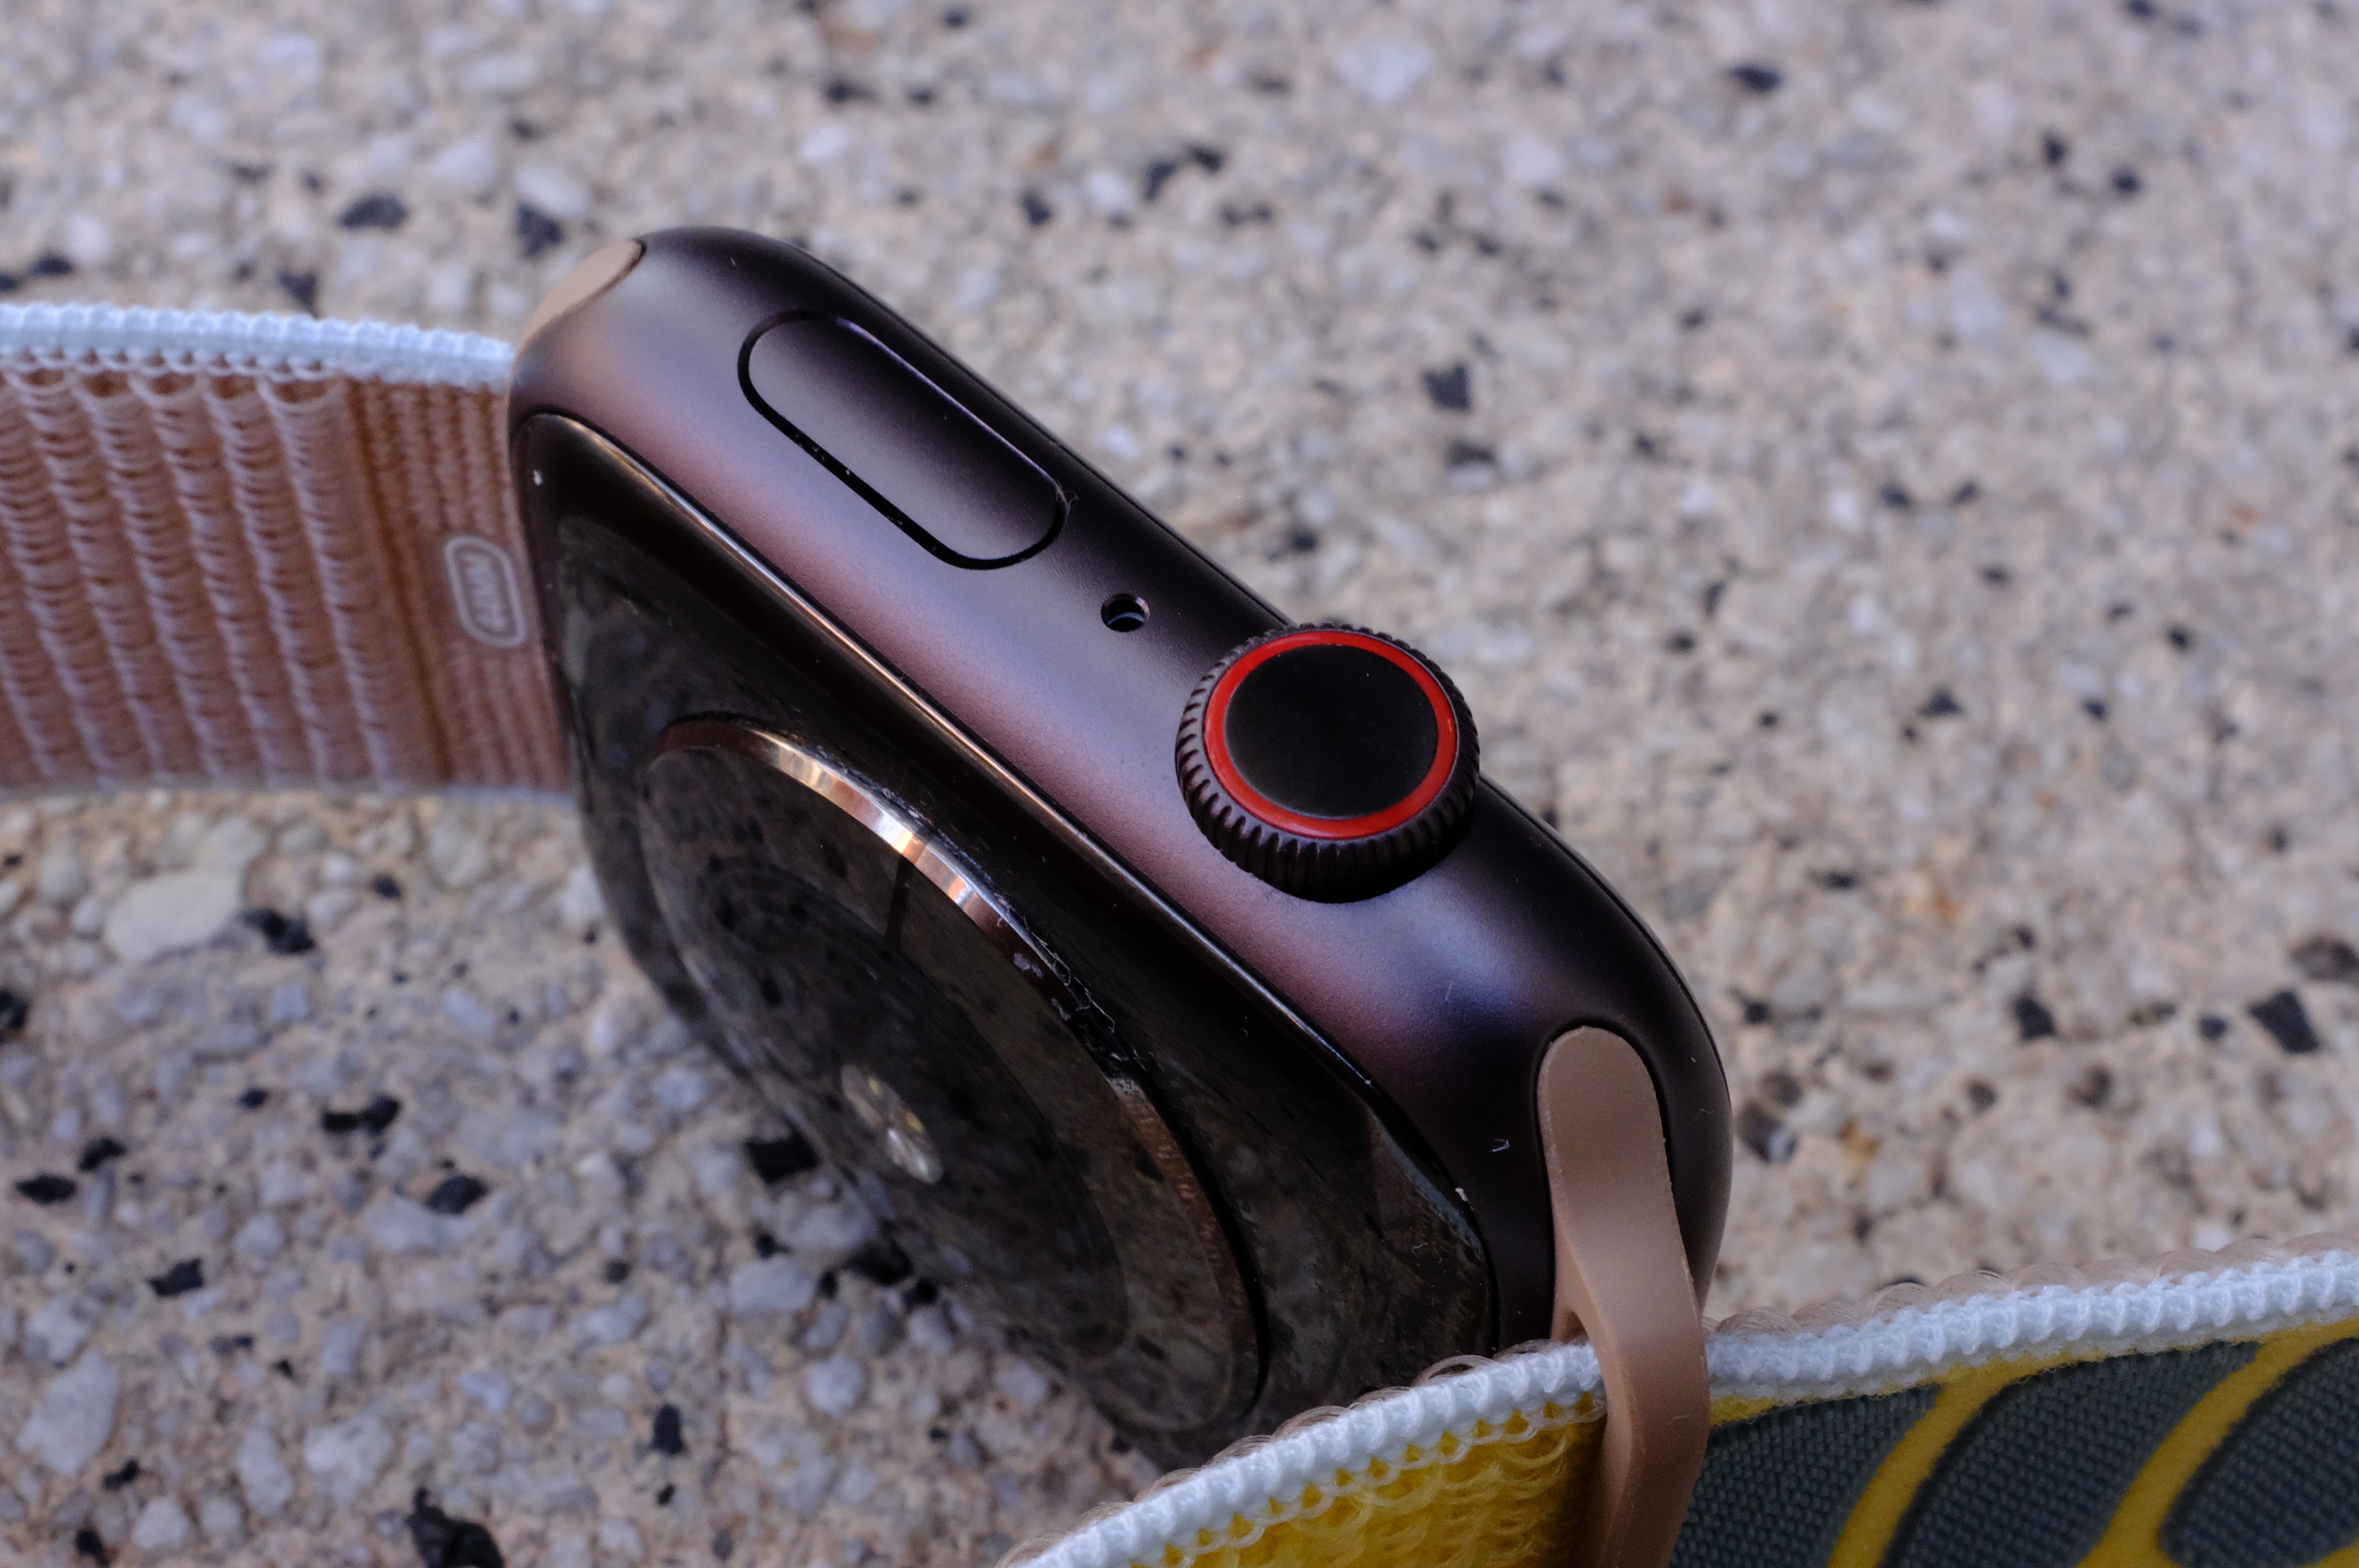 DSCF7804 - Apple Watch Series 5 review